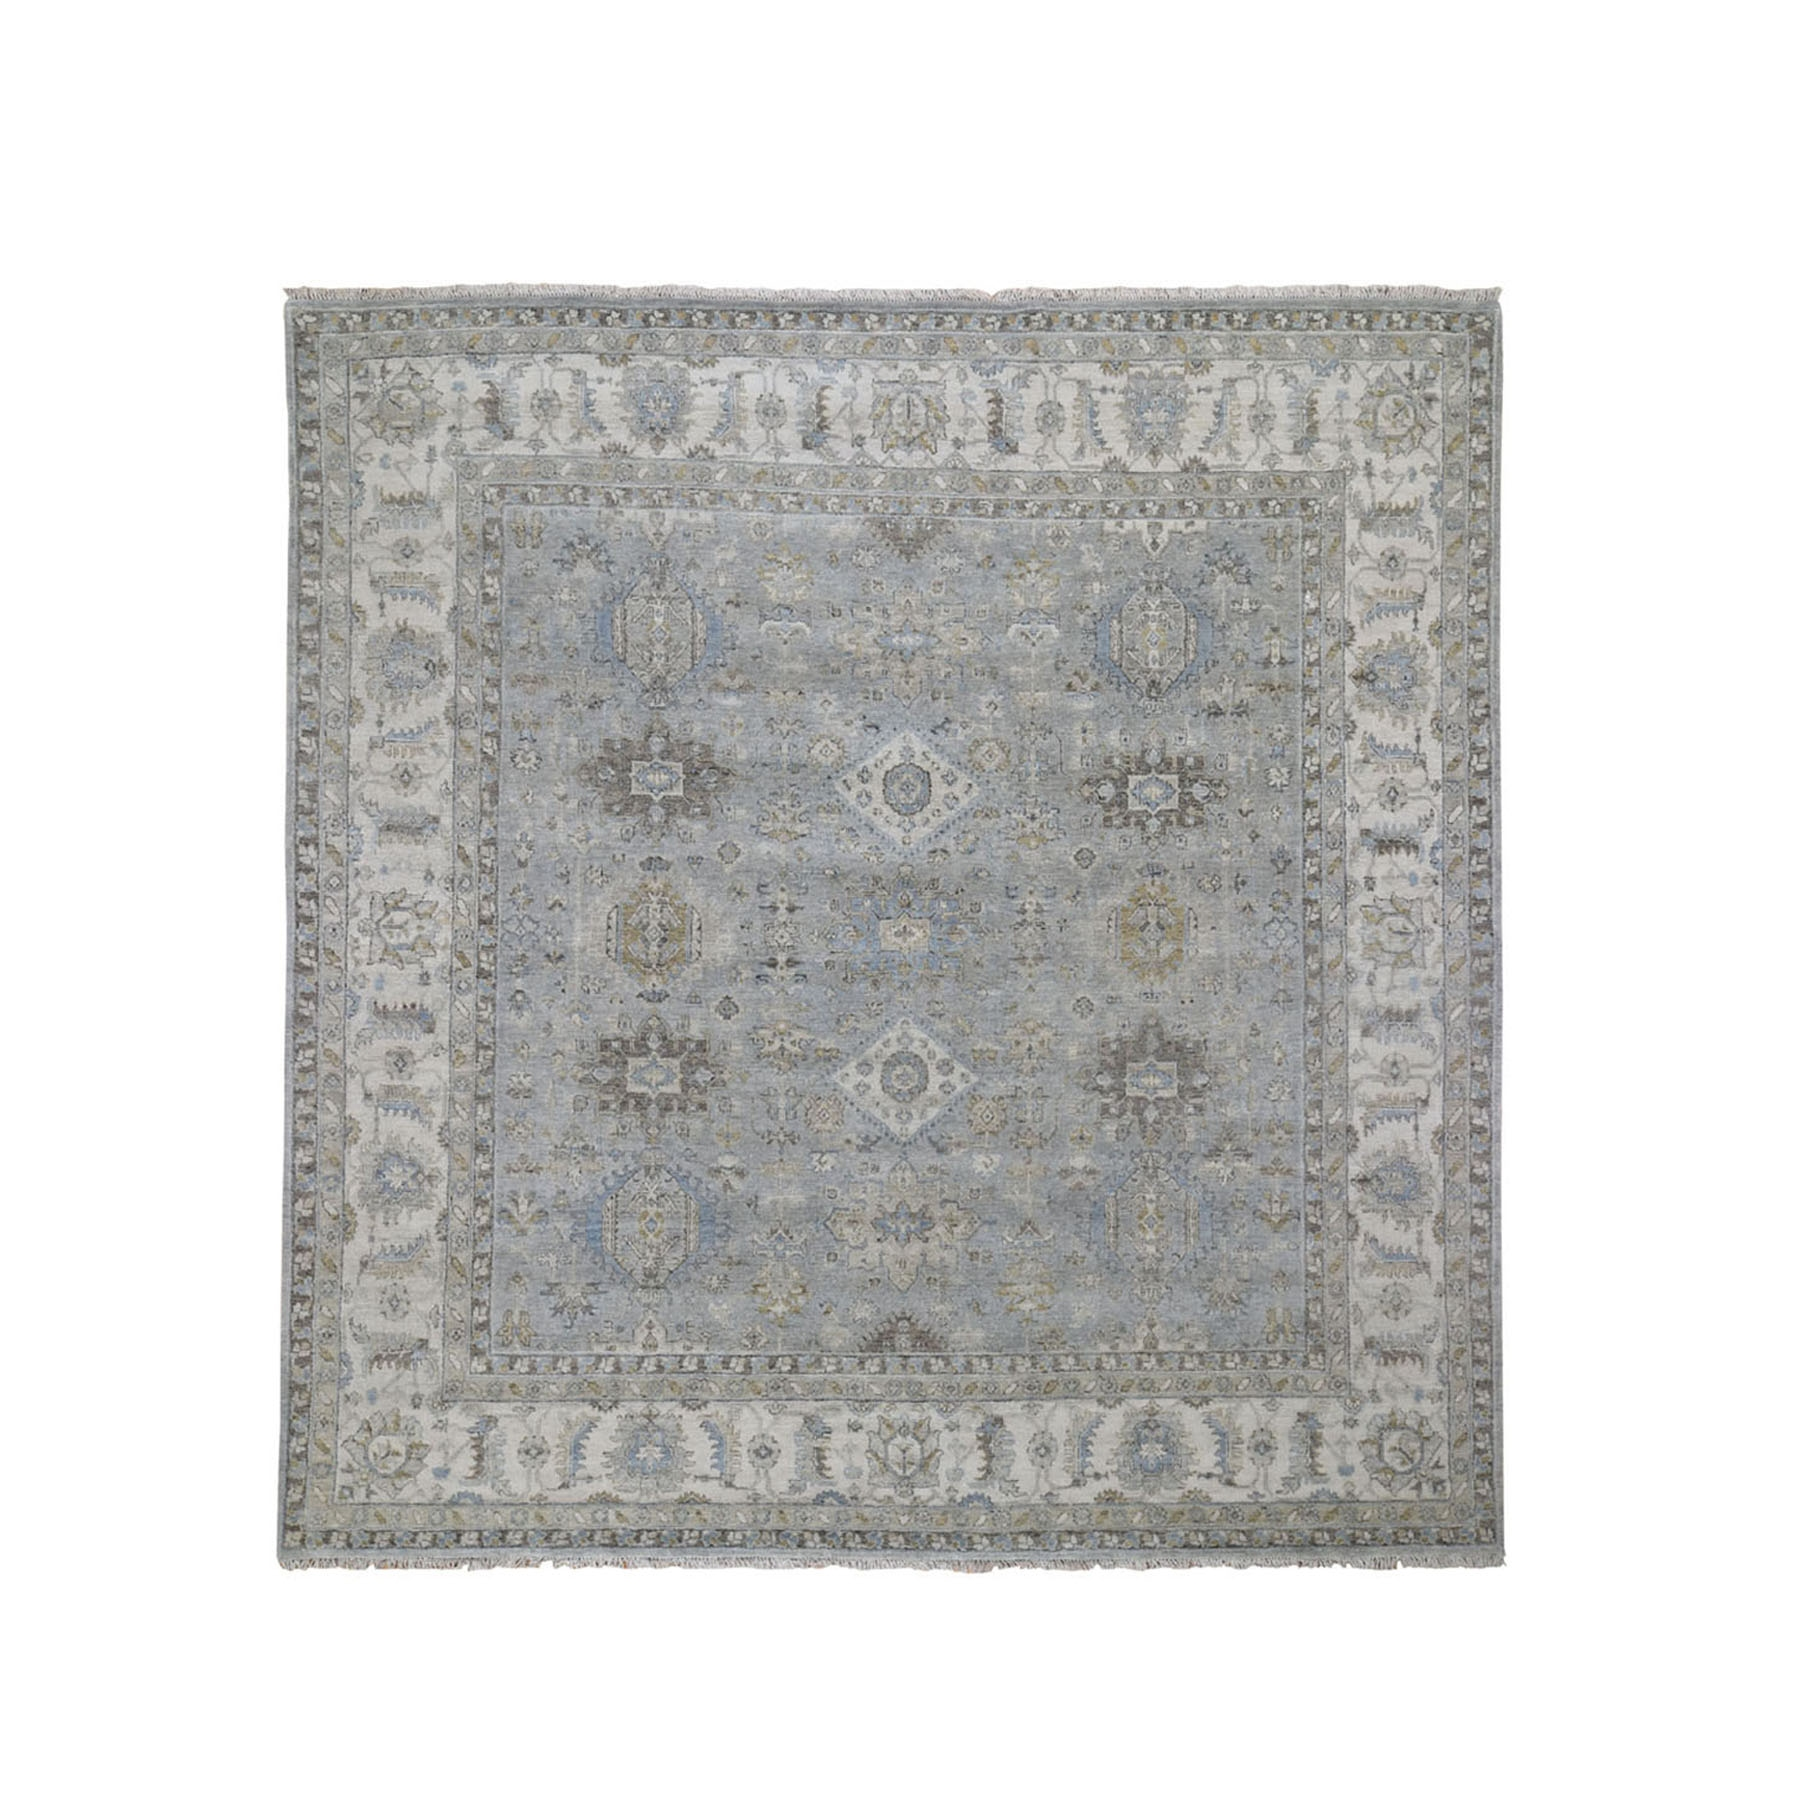 8'X8' Gray Square Karajeh Design Pure Wool Gray Hand Knotted Oriental Rug moad8866